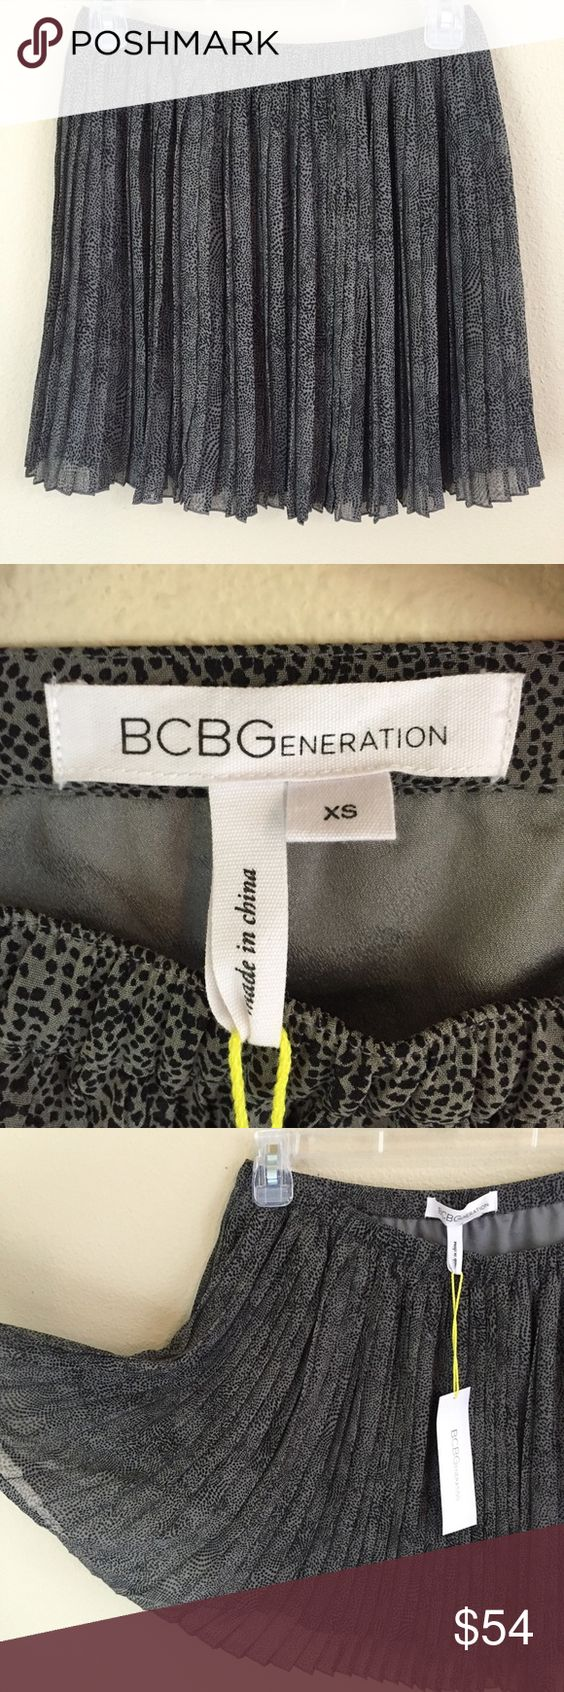 BCBGeneration XS Skirt gray animal print NWT New XS BCBGeneration skirt. Fully lined with elastic waist & cute pleats. Light discoloration on inside lining of skirt, isn't seen when worn. BCBGeneration Skirts Mini